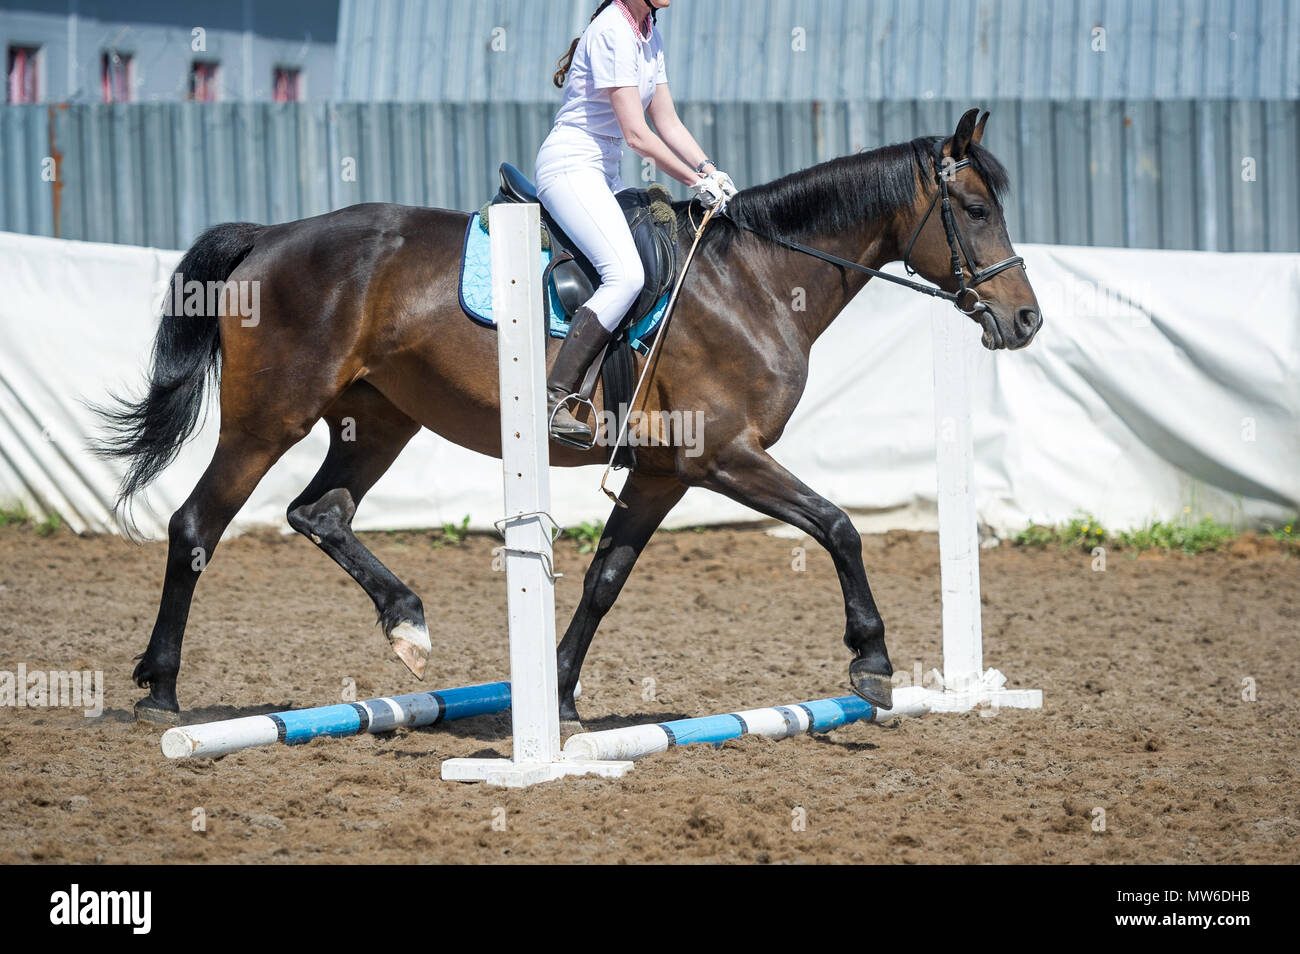 Training in horse riding, entry level. Cavaletti on a trot - Stock Image